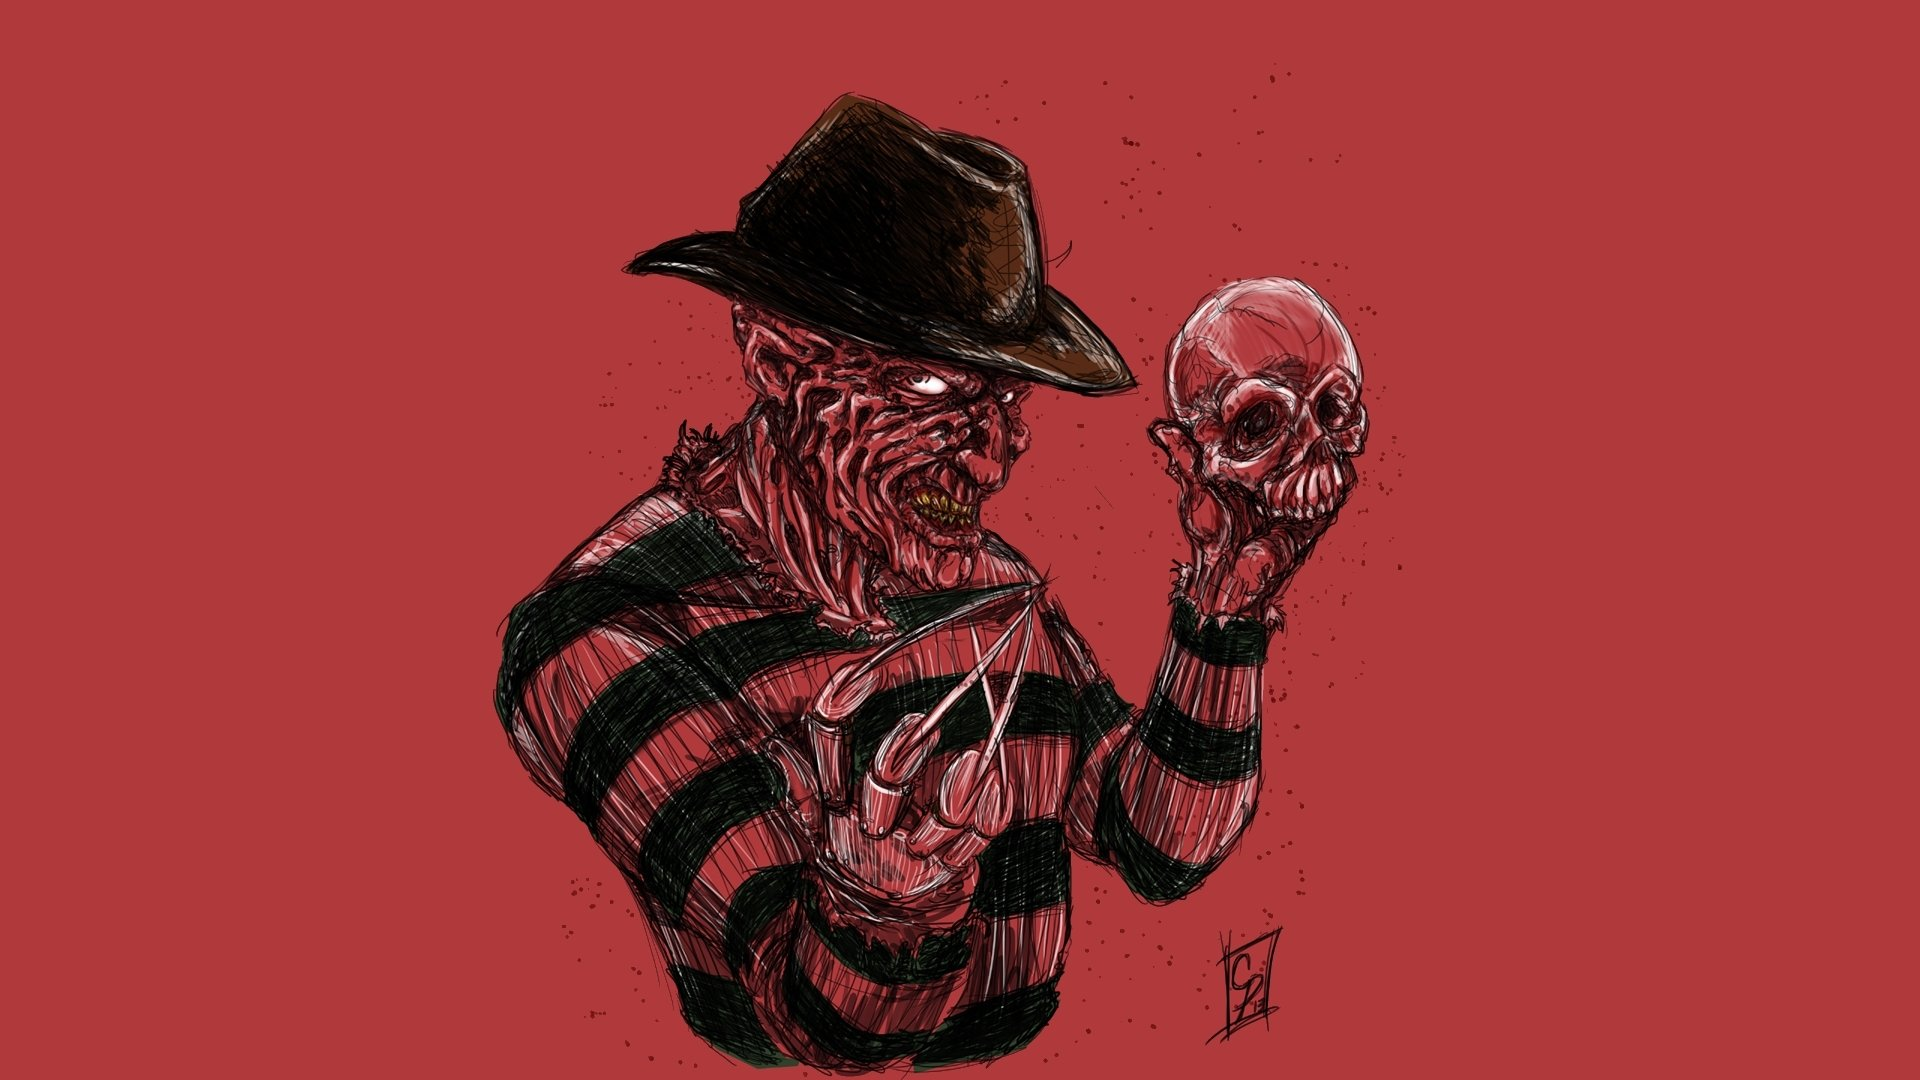 97 A Nightmare On Elm Street HD Wallpapers